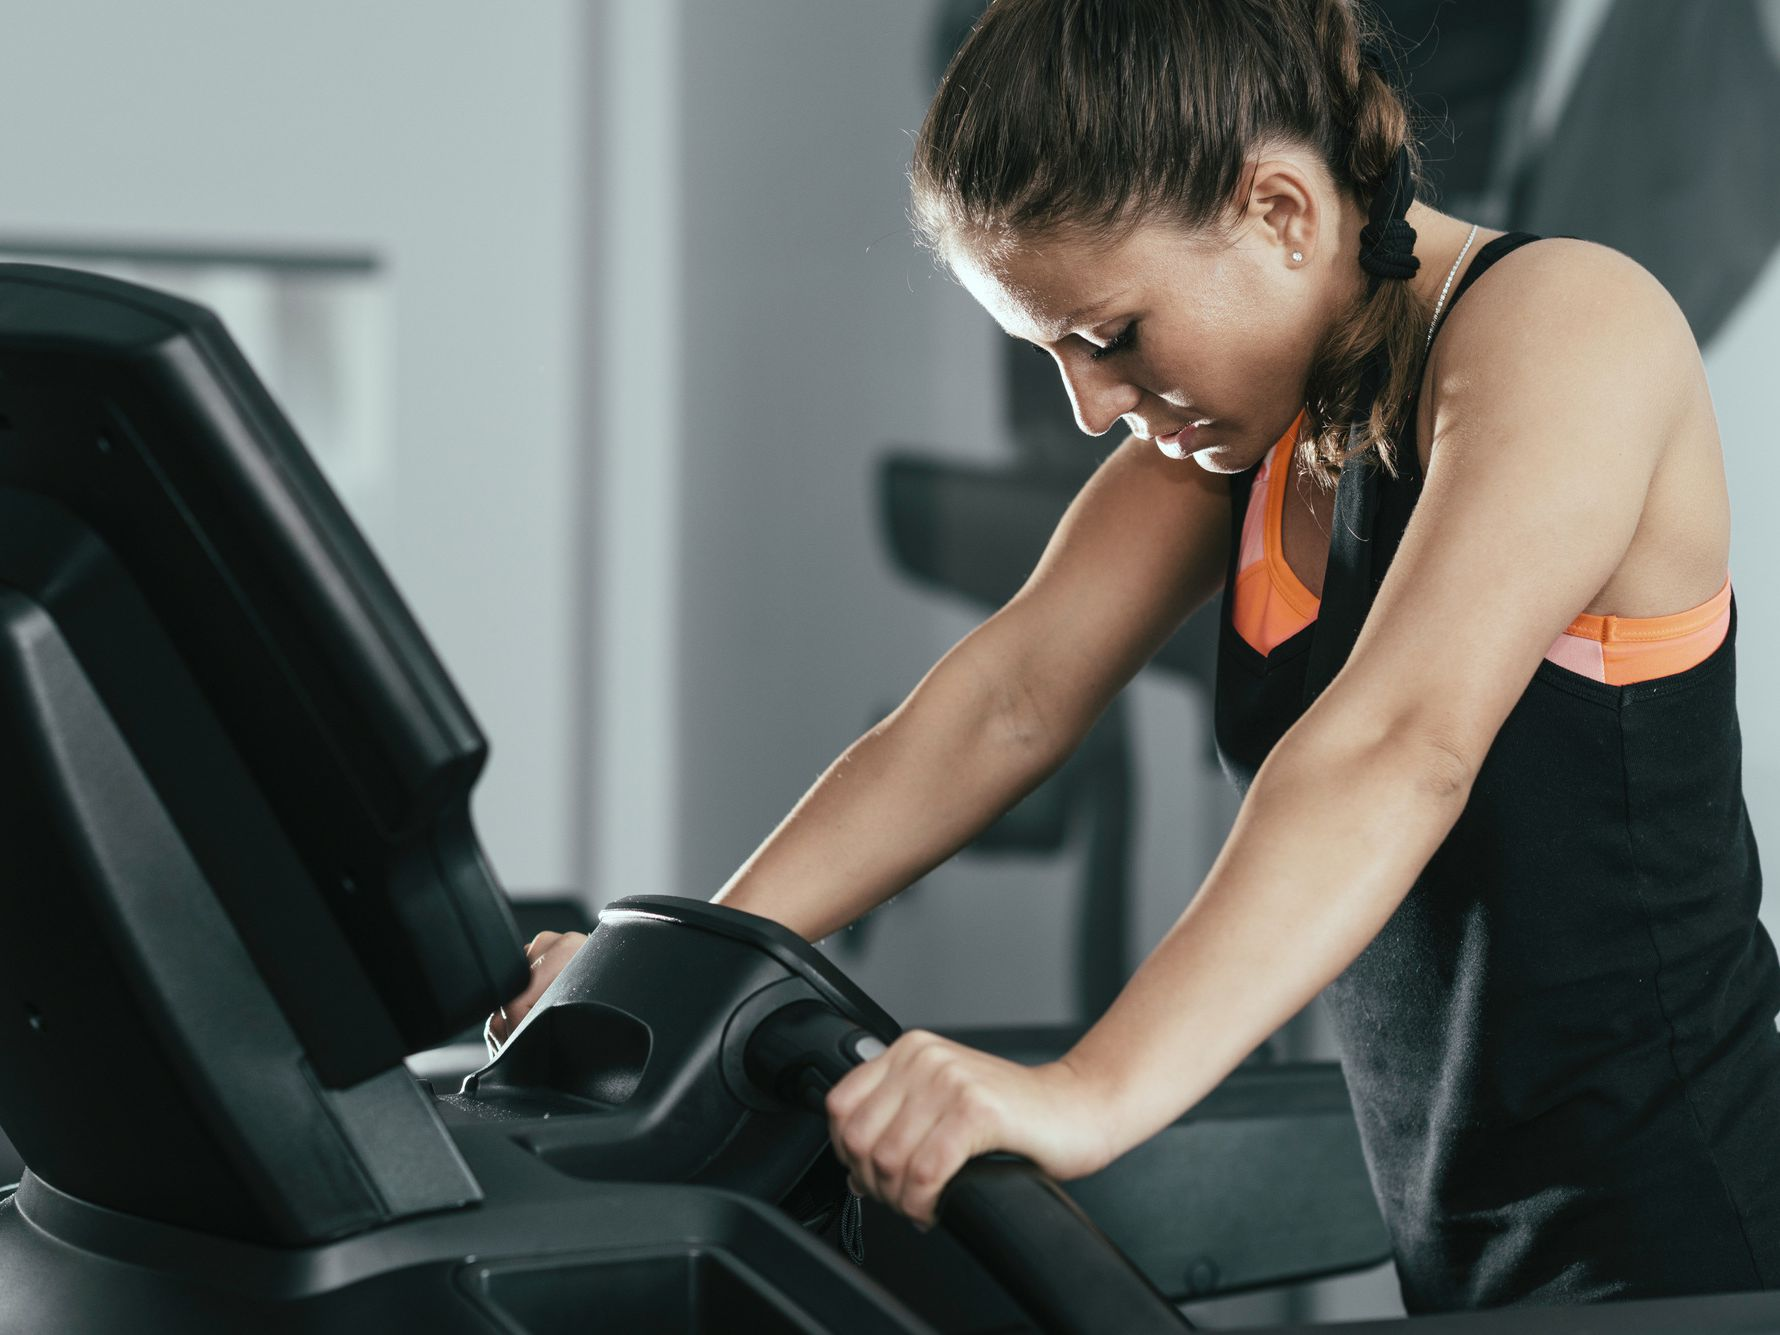 10 Treadmill Walking Mistakes To Avoid